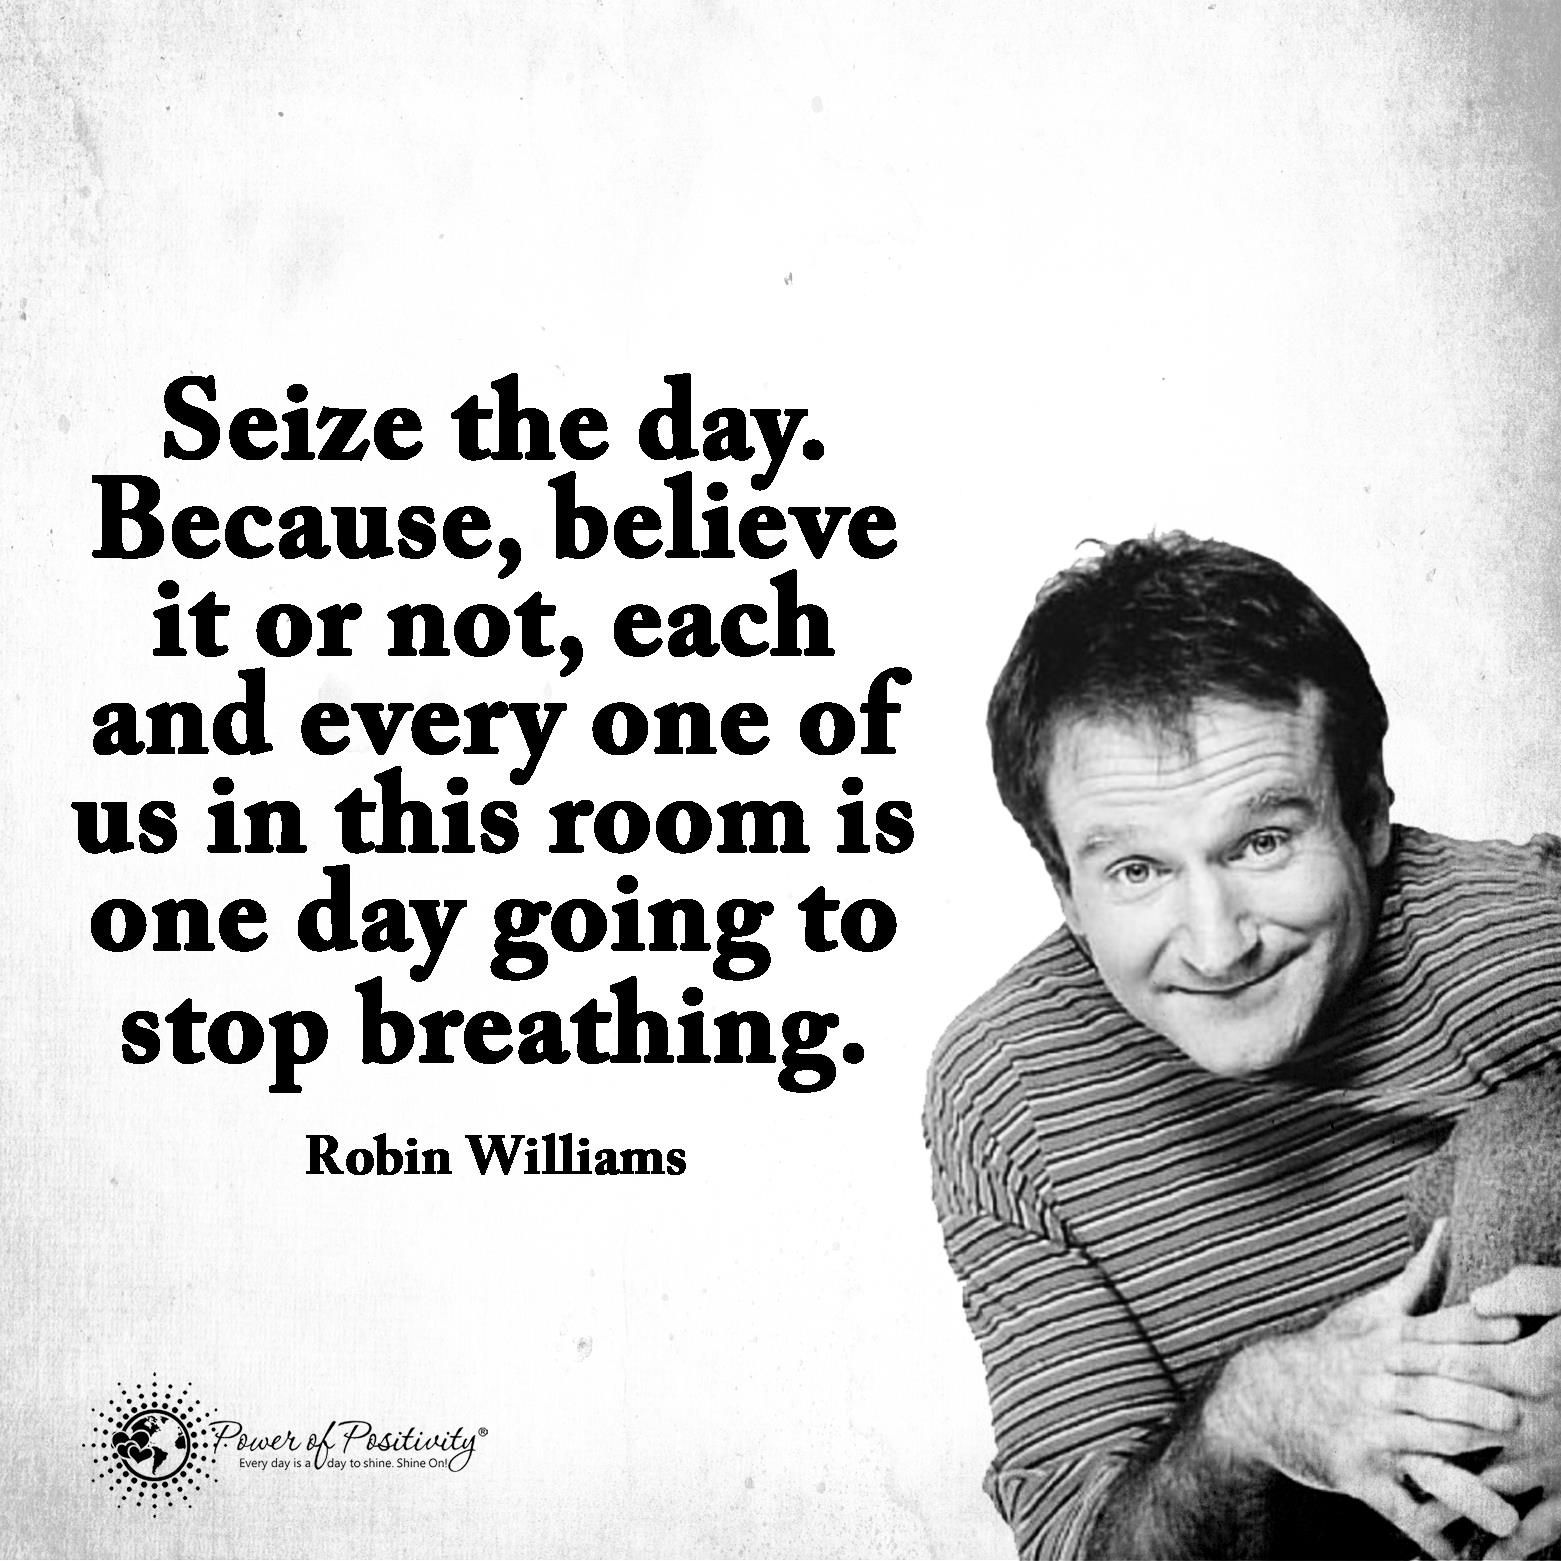 11 Life Lessons To Learn From Robin Williams Robin Williams Quotes Robin Williams Life Lessons